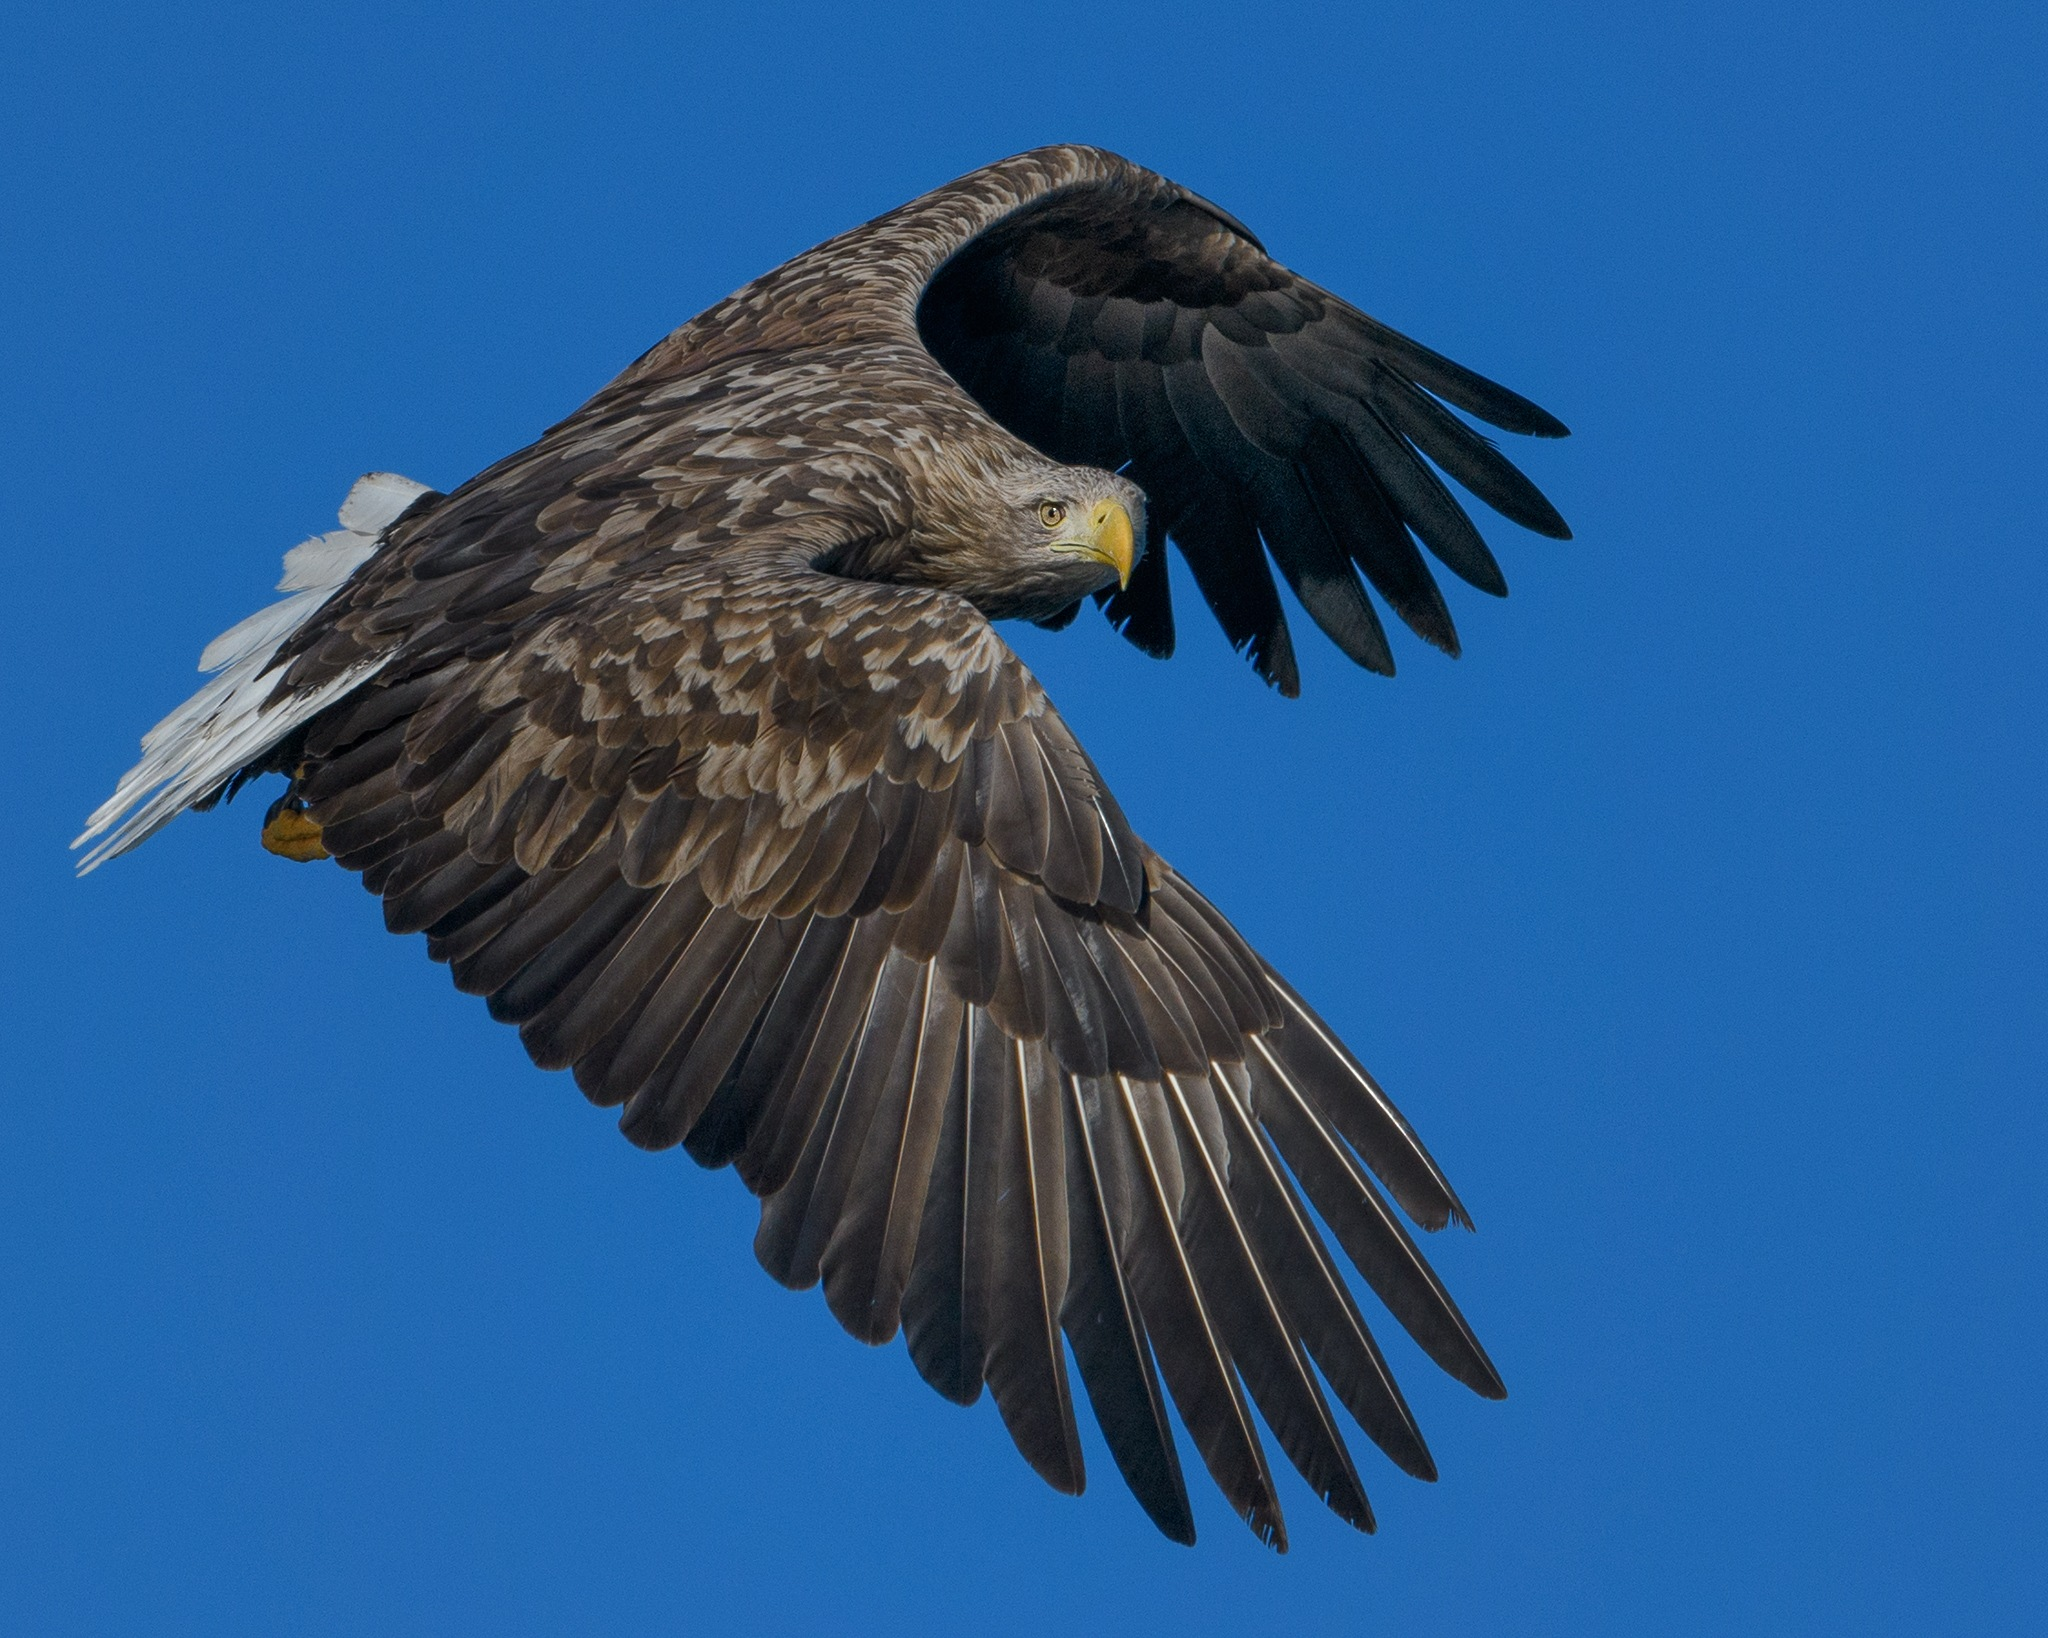 White tailed eagle by frode.wendelbo